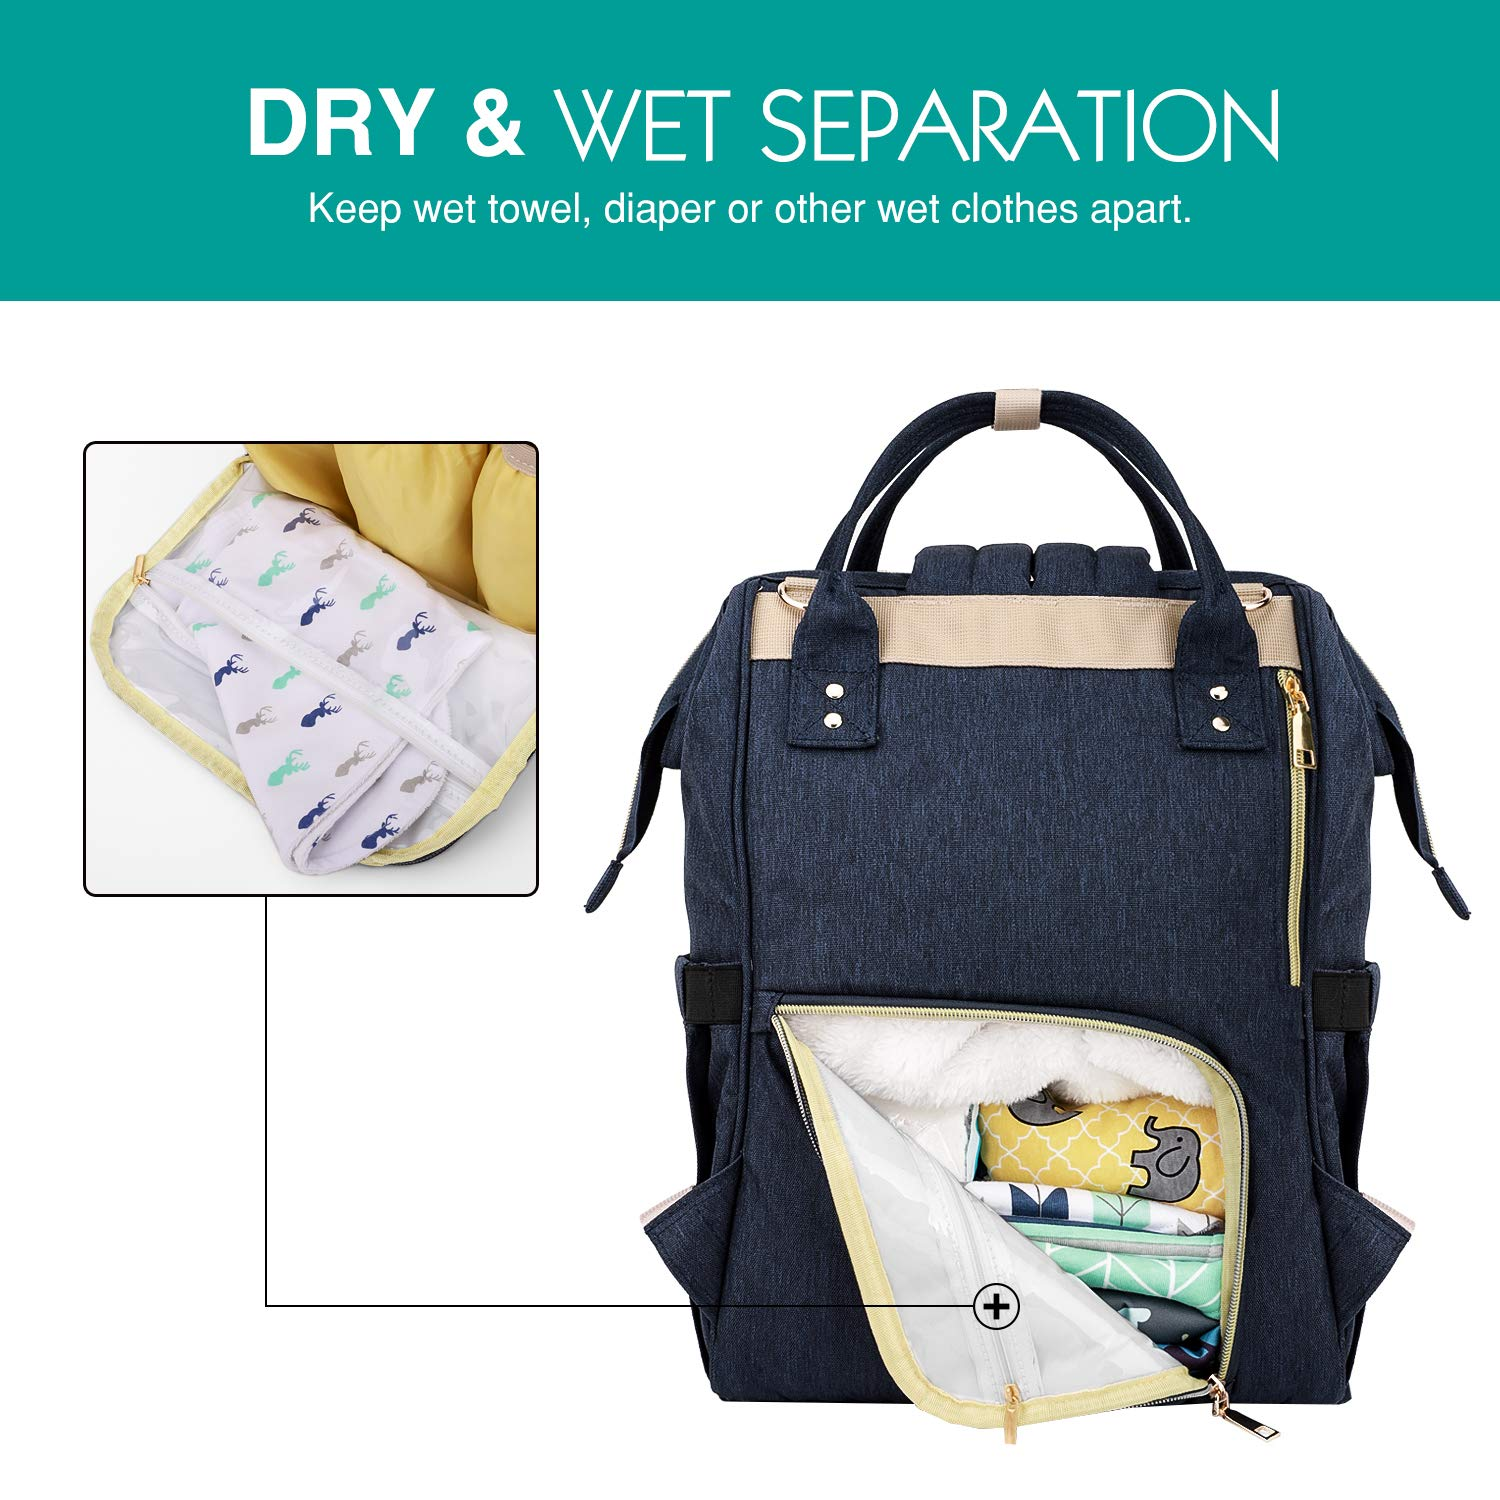 Zooawa Baby Diaper Bag Backpack Large Capacity Waterproof Multifunctional Mommy Nappy Tote Bag Multi Pockets Travel Organizer for Baby Care Blue